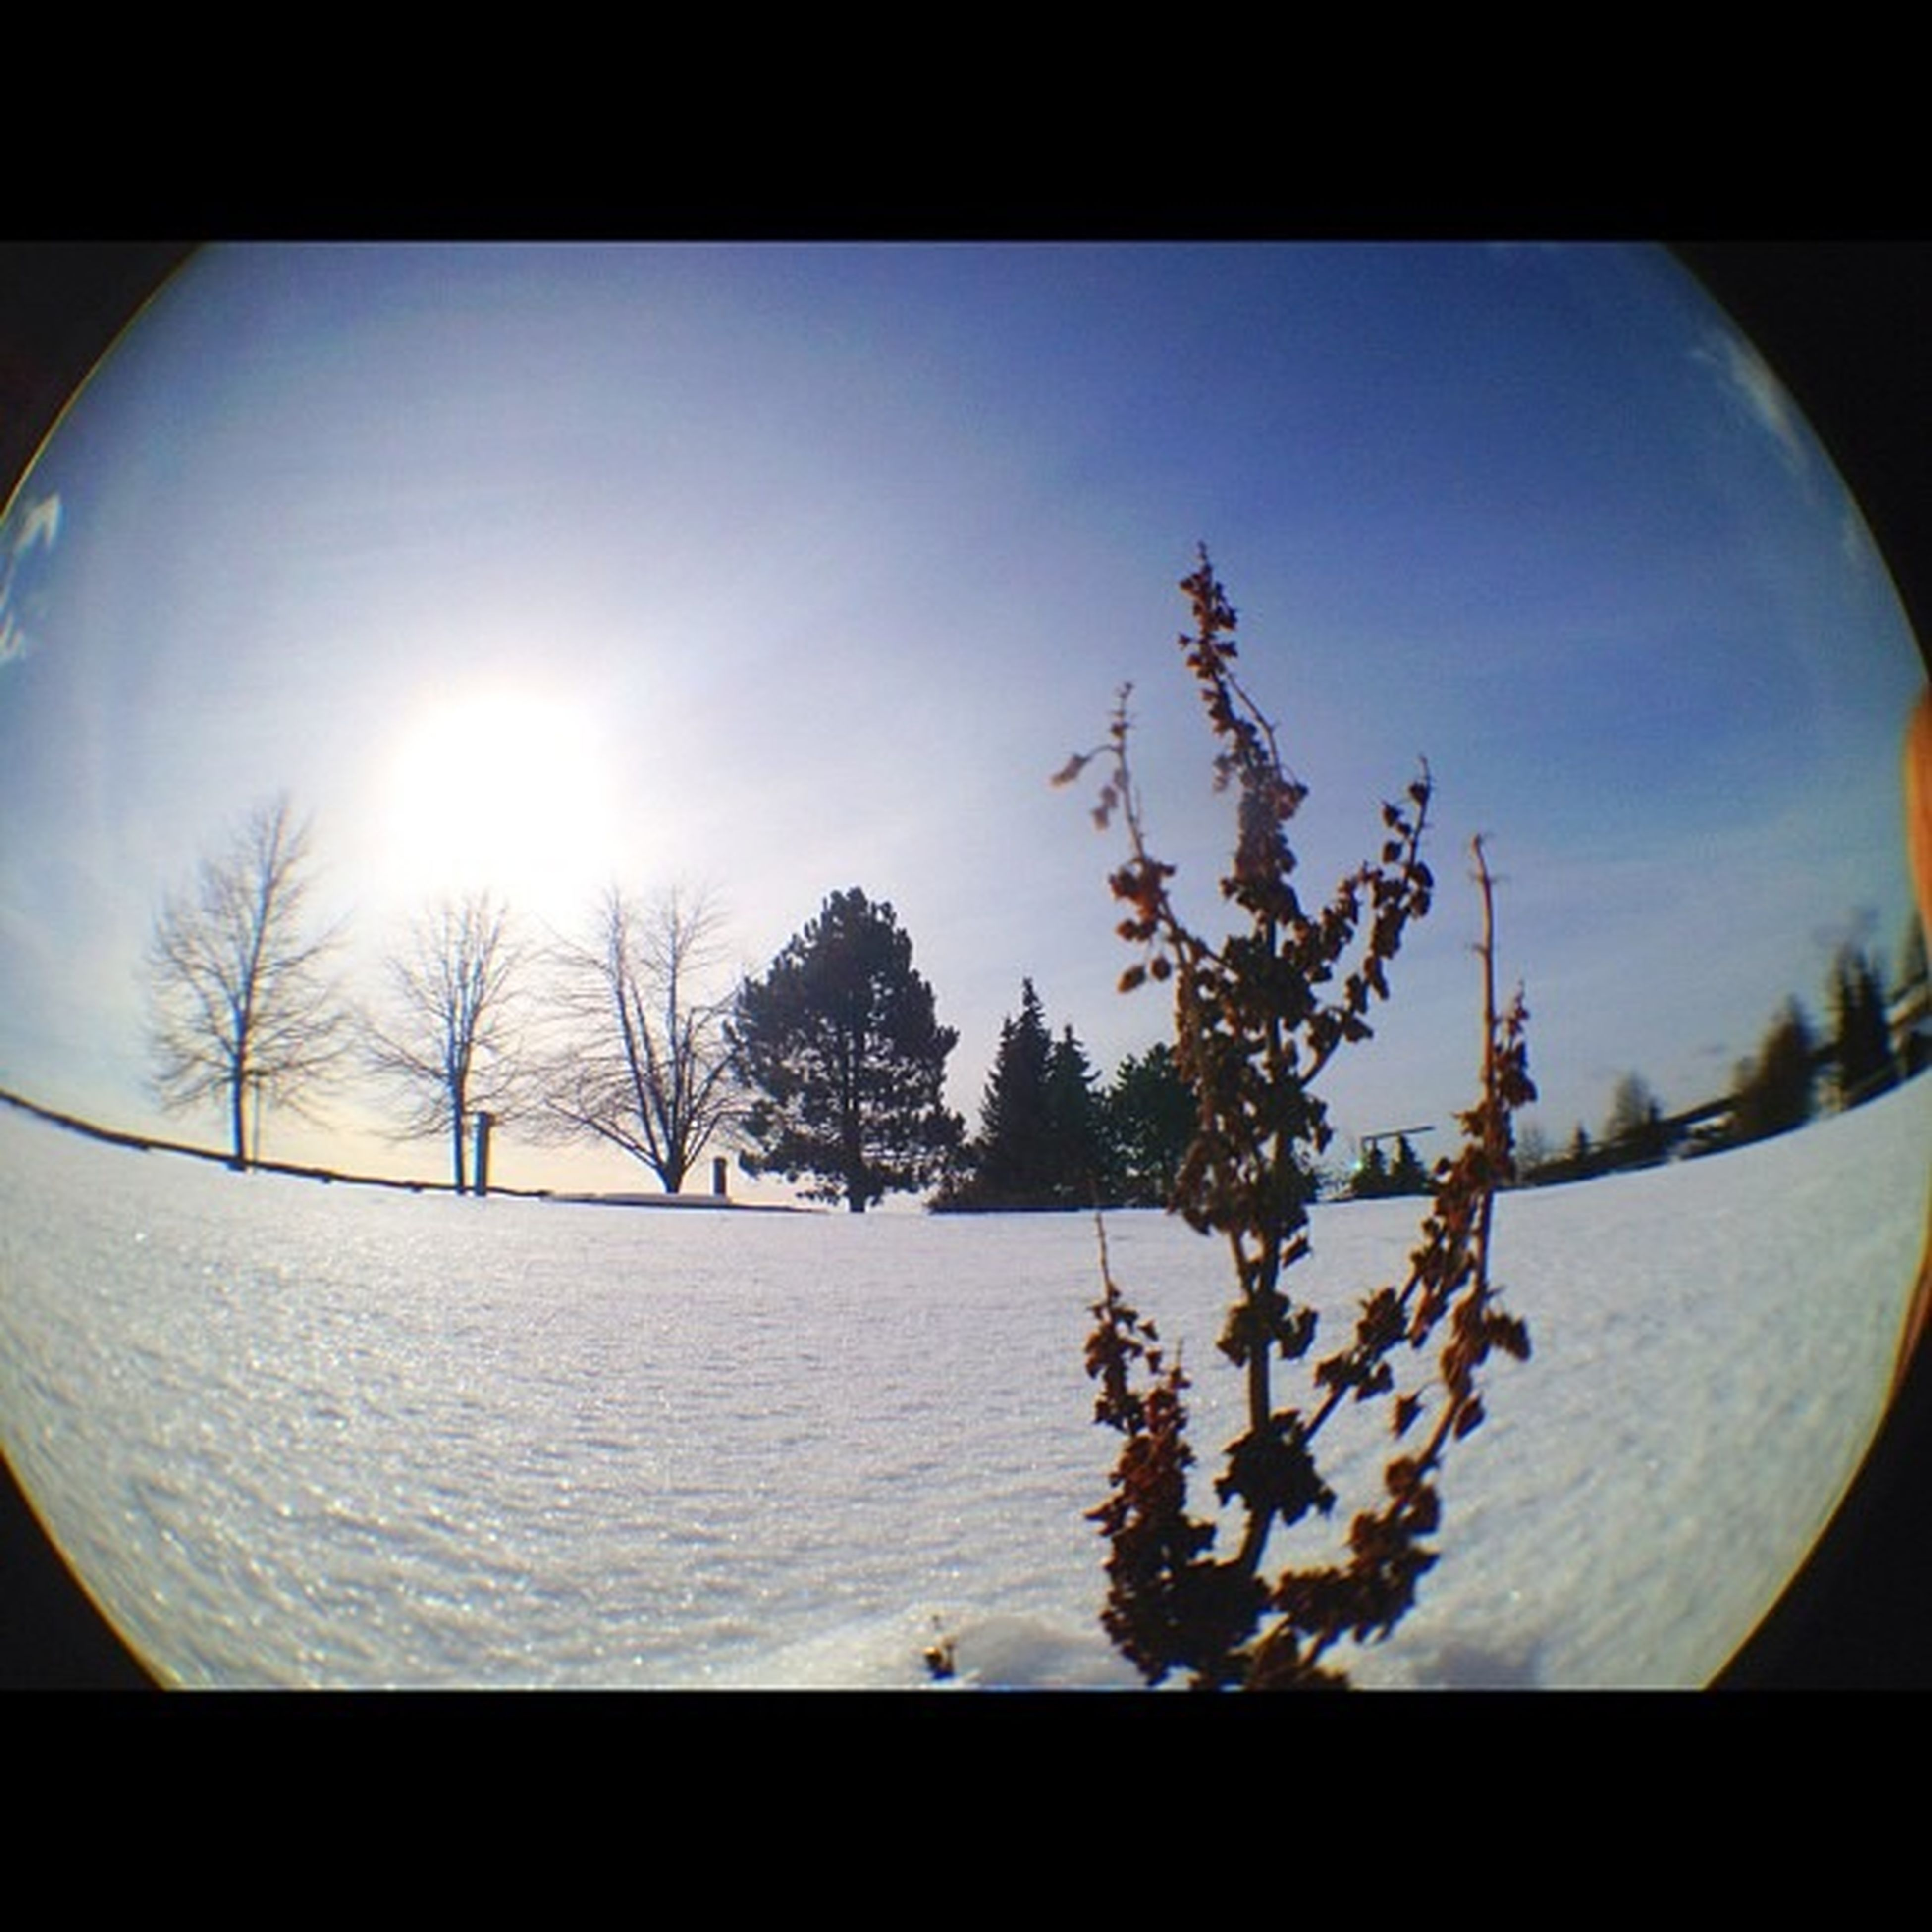 snow, transfer print, tree, sunlight, white color, beauty in nature, nature, winter, cold temperature, sun, flower, growth, auto post production filter, sky, season, plant, close-up, day, branch, indoors